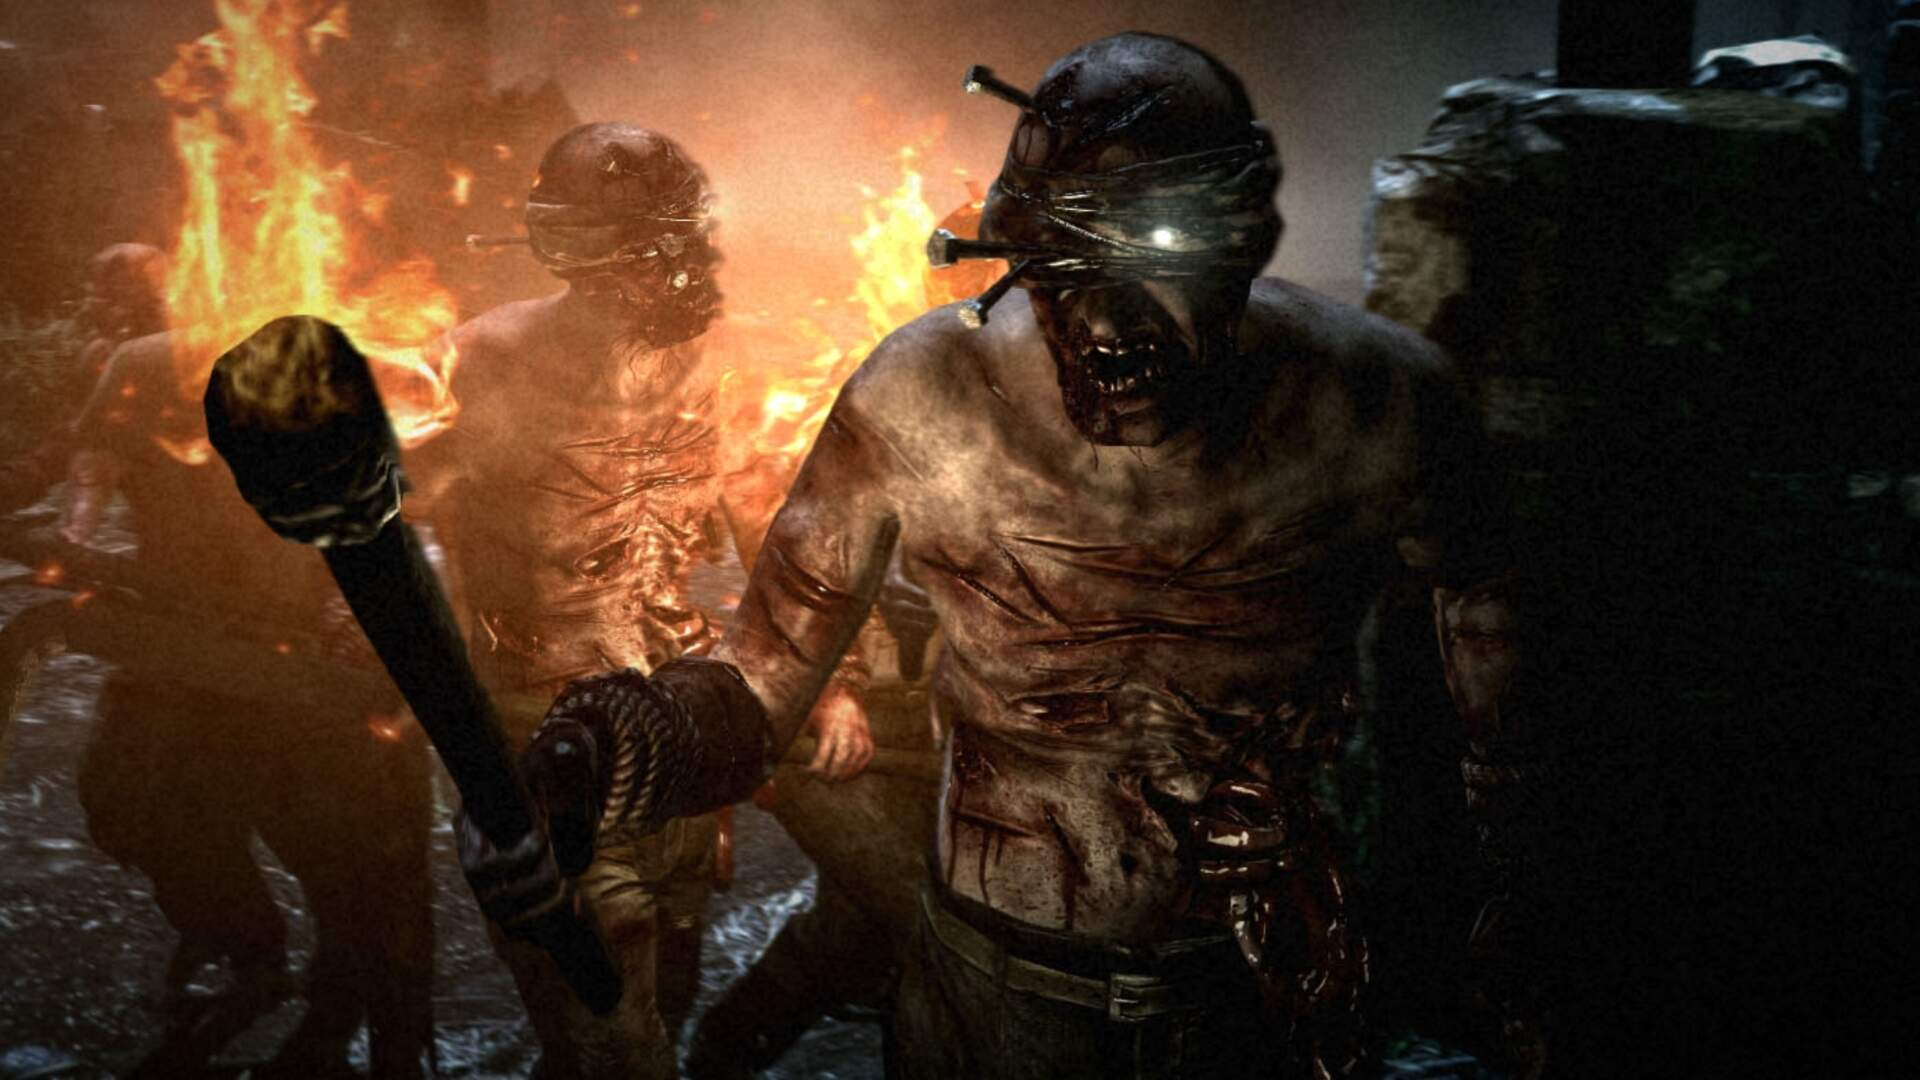 EGX: The Evil Within is That New Resident Evil Game You're Looking For